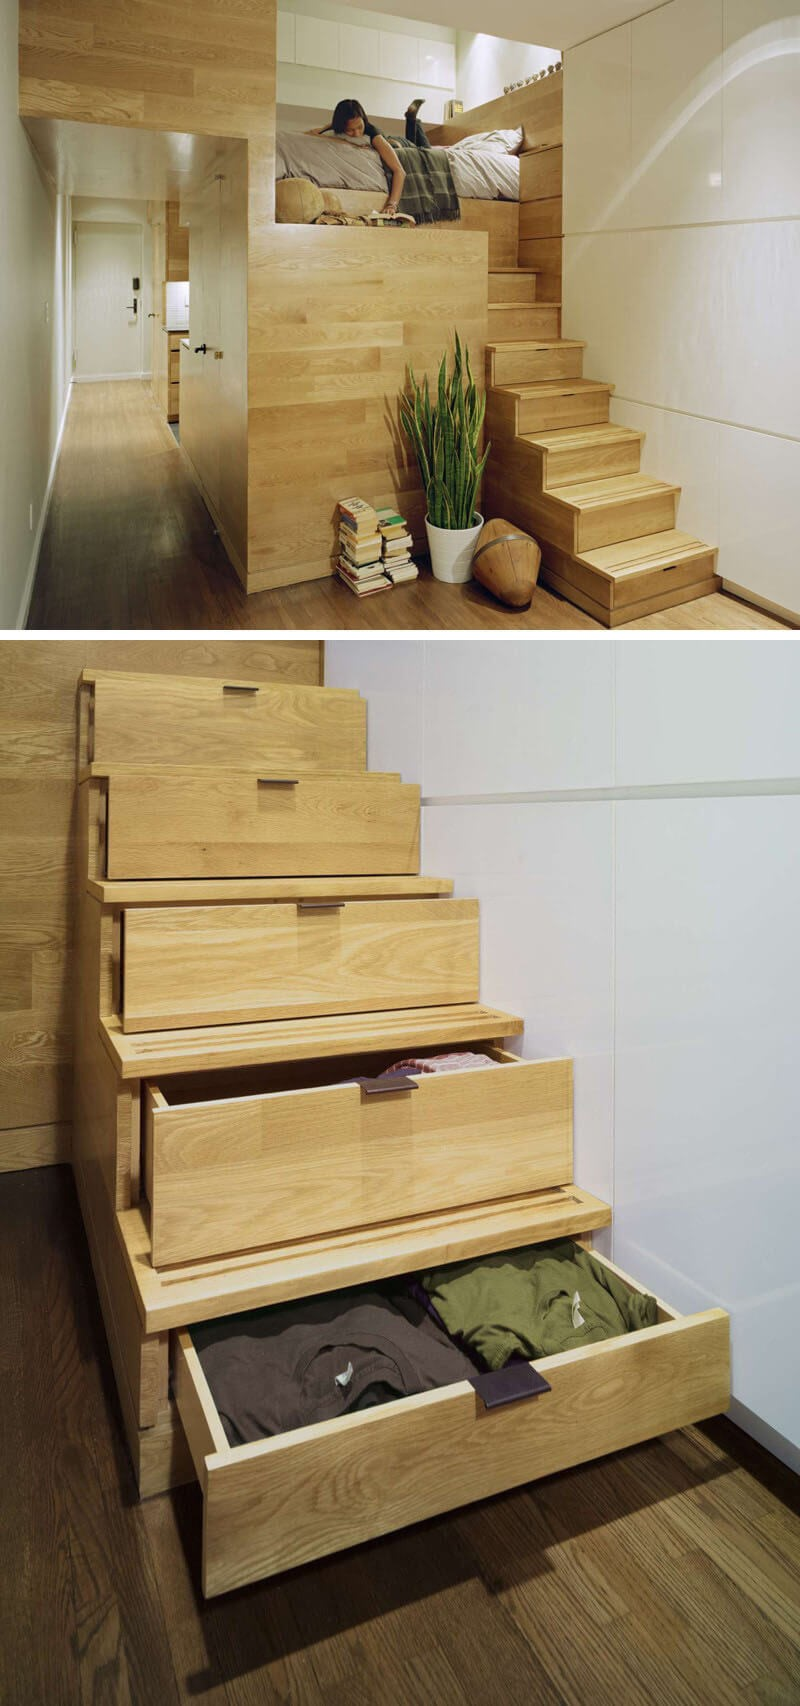 9 Genuine Staircase Storage Idea via simphome